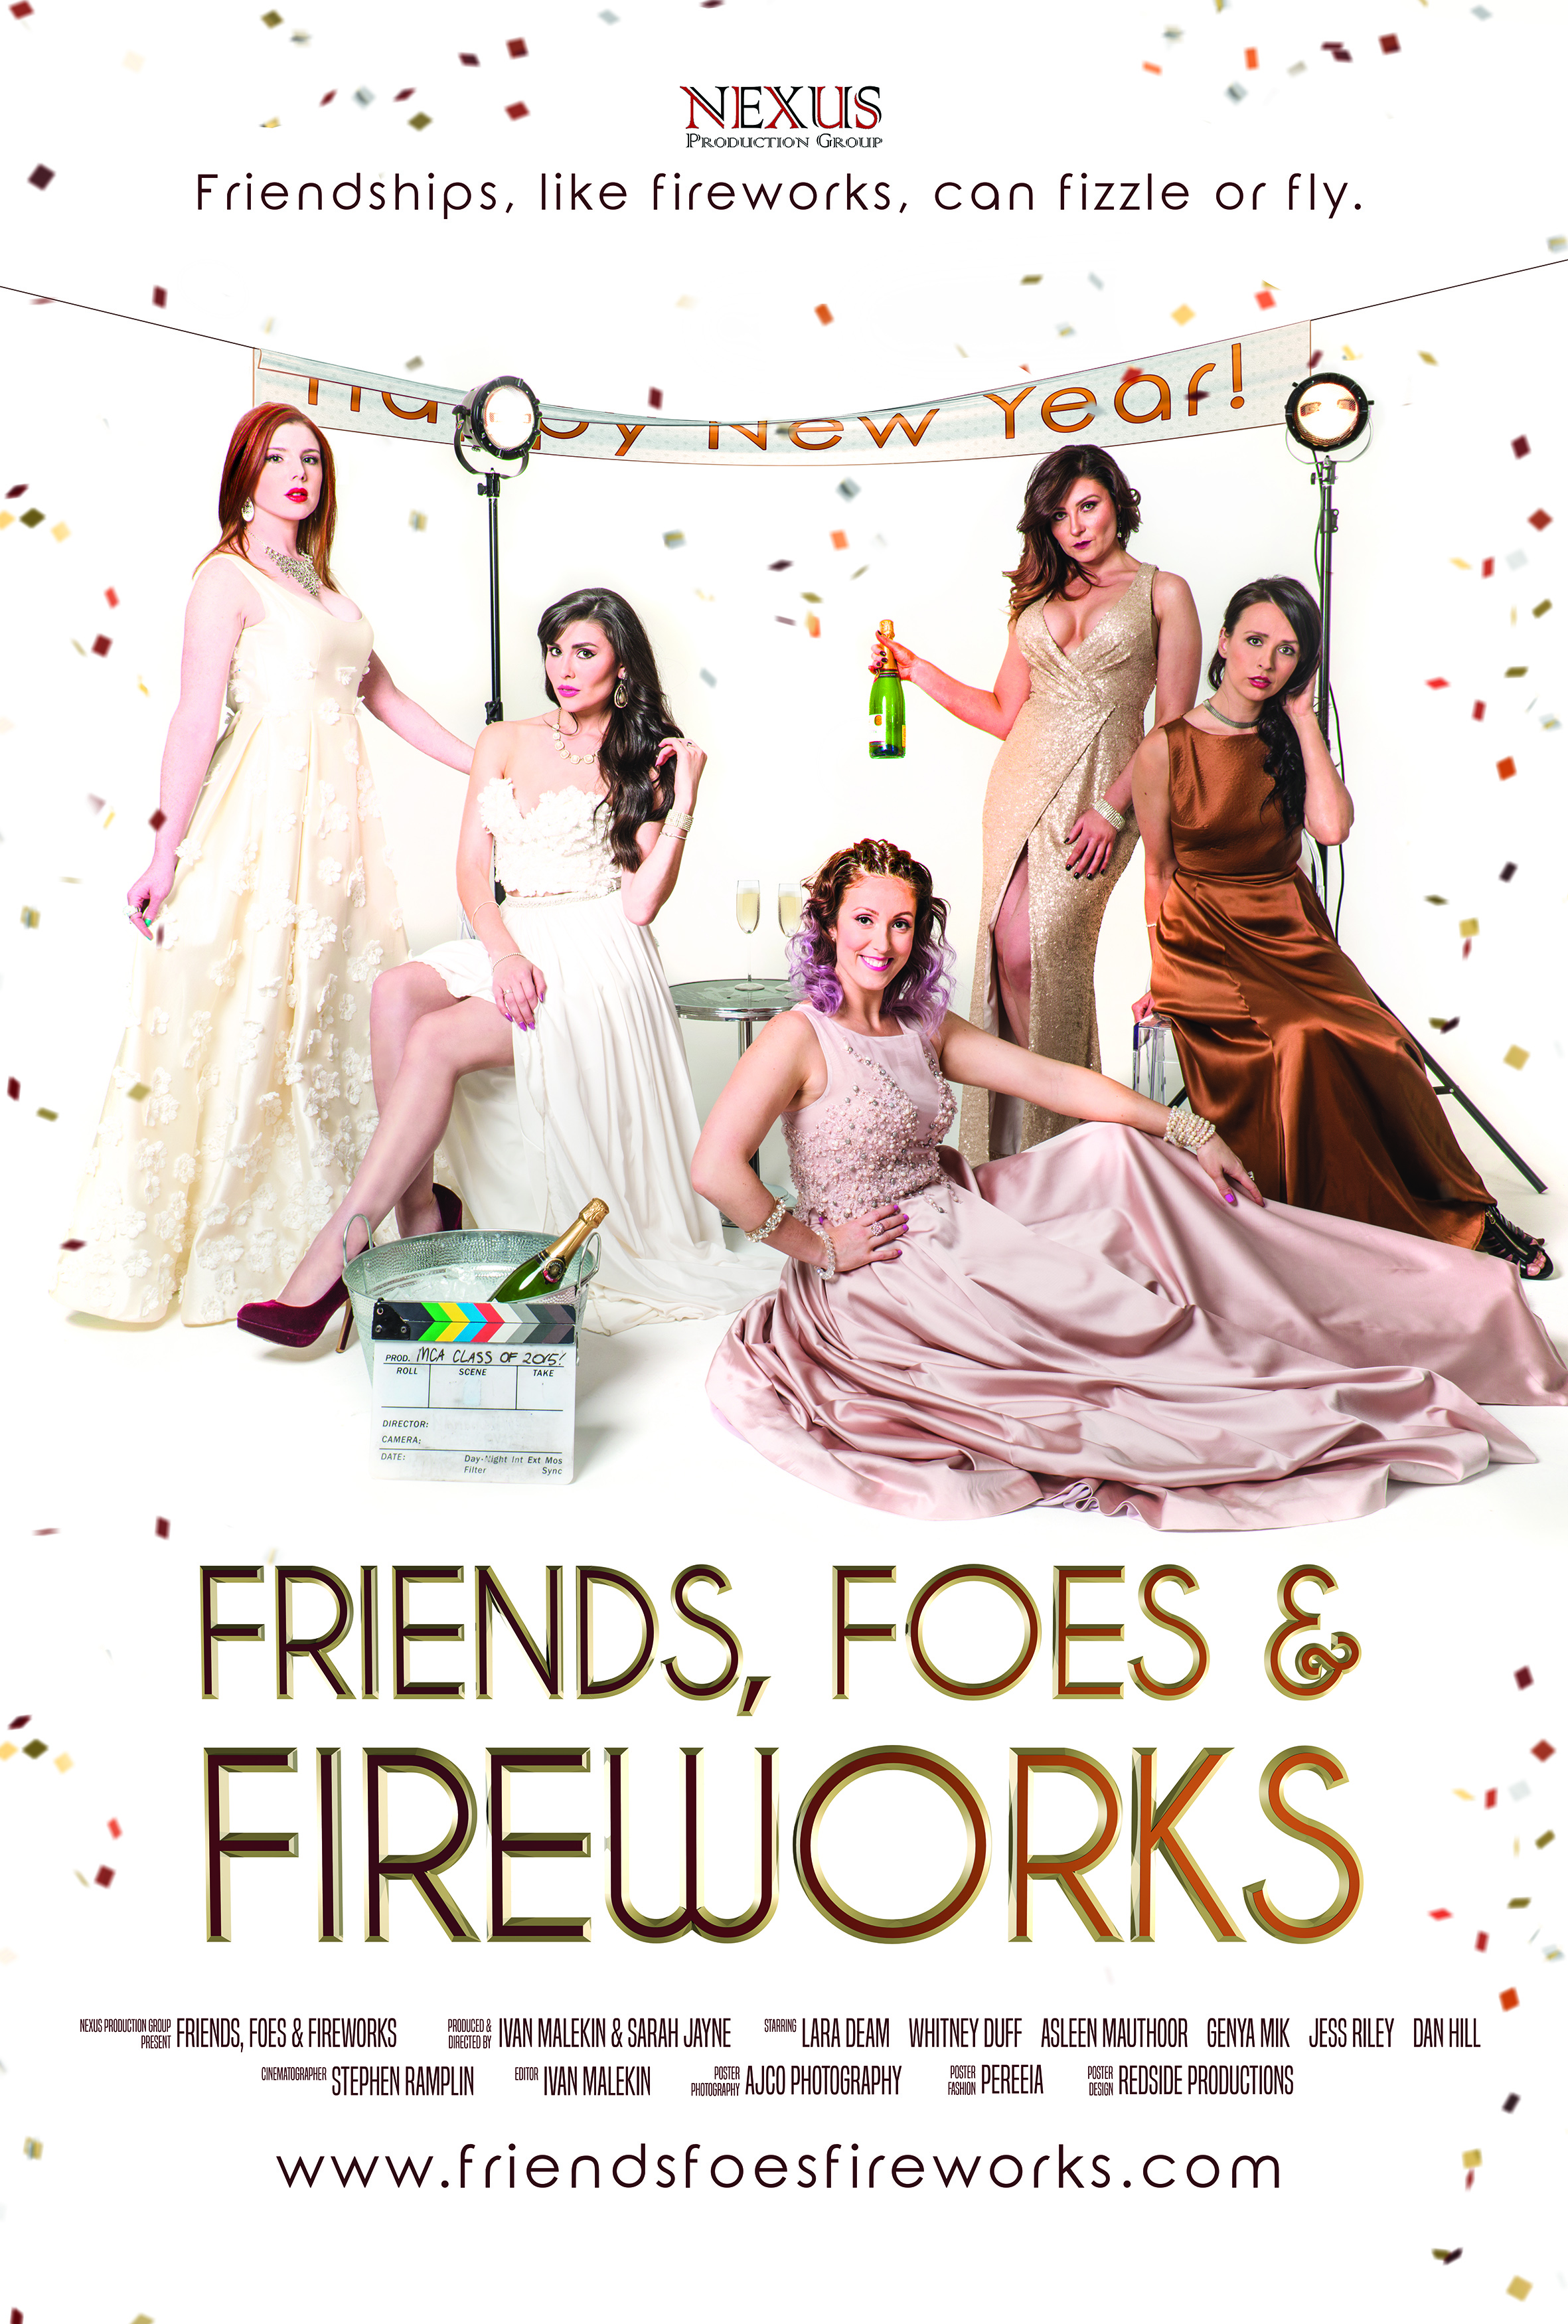 Official Friends, Foes & Fireworks Poster - Photography by AJCOphotography, Poster Edit by Redside Productions and Fashion by Pereeia